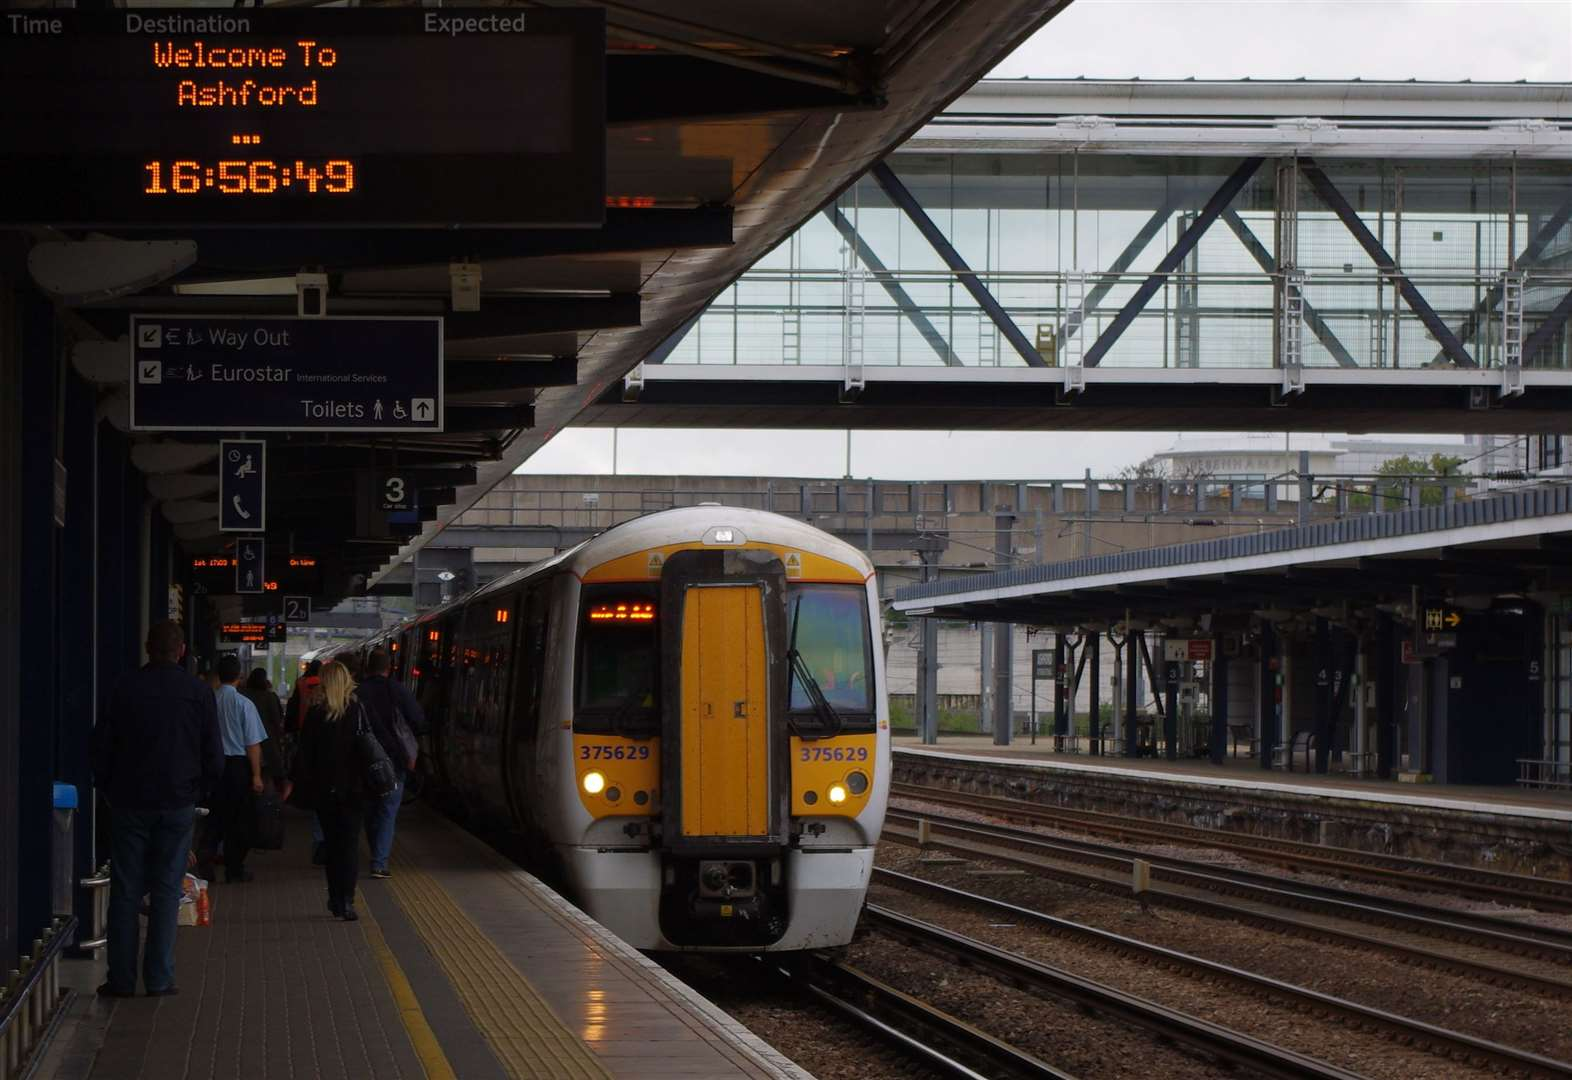 Works to disrupt Easter train travel